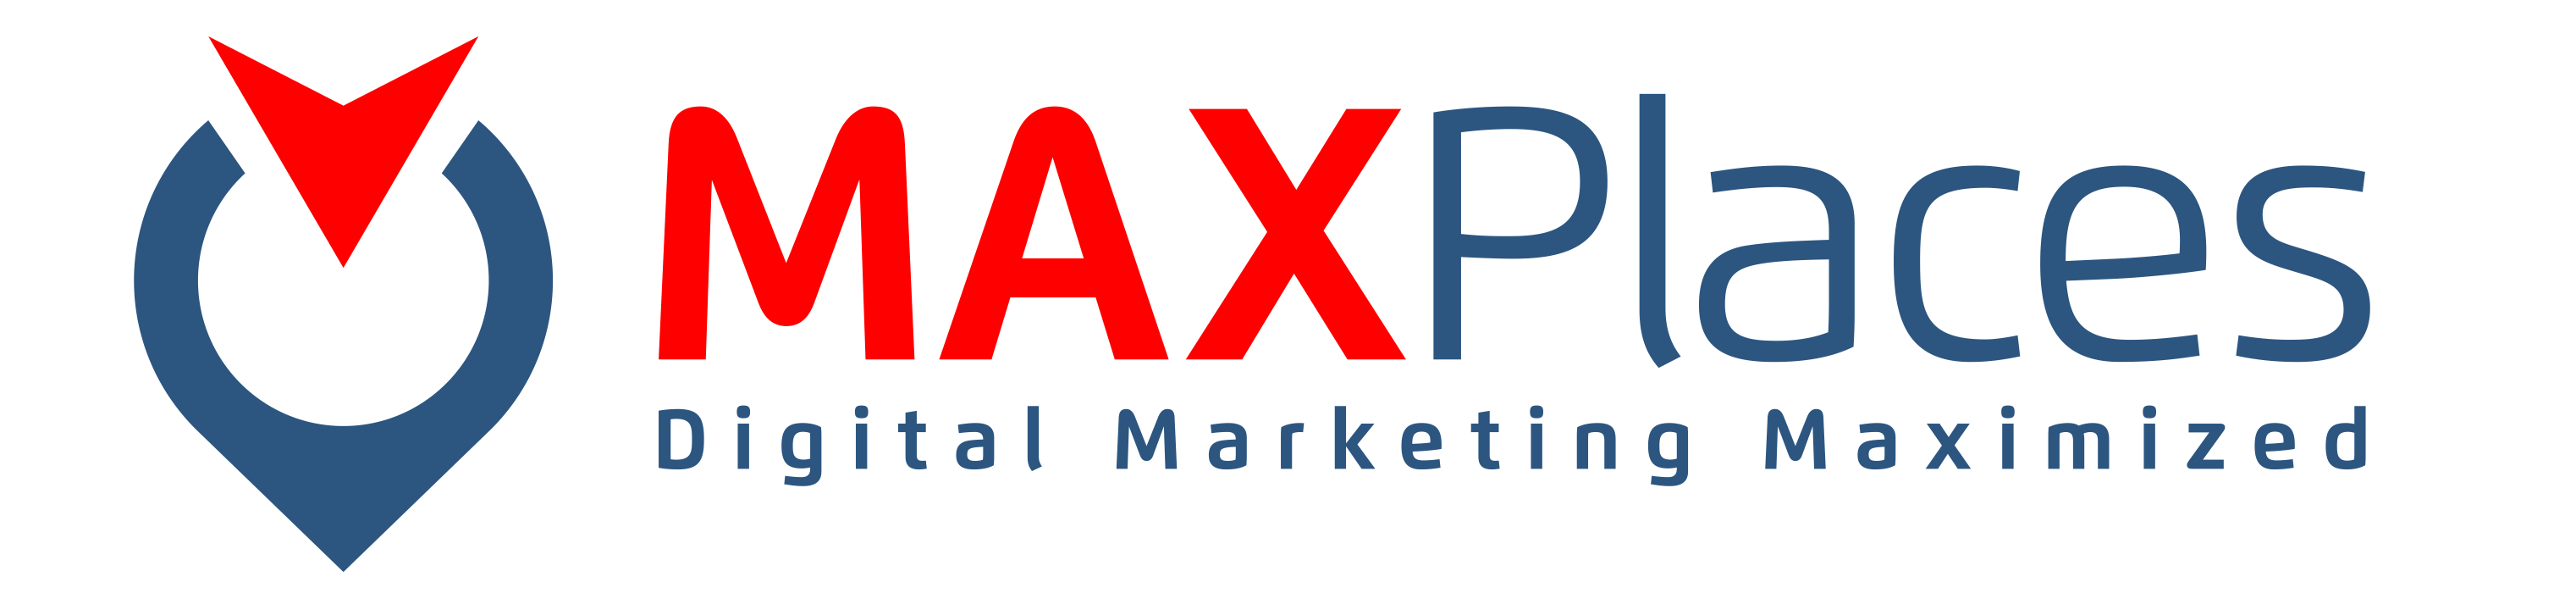 MAXPlaces Marketing, LLC Logo